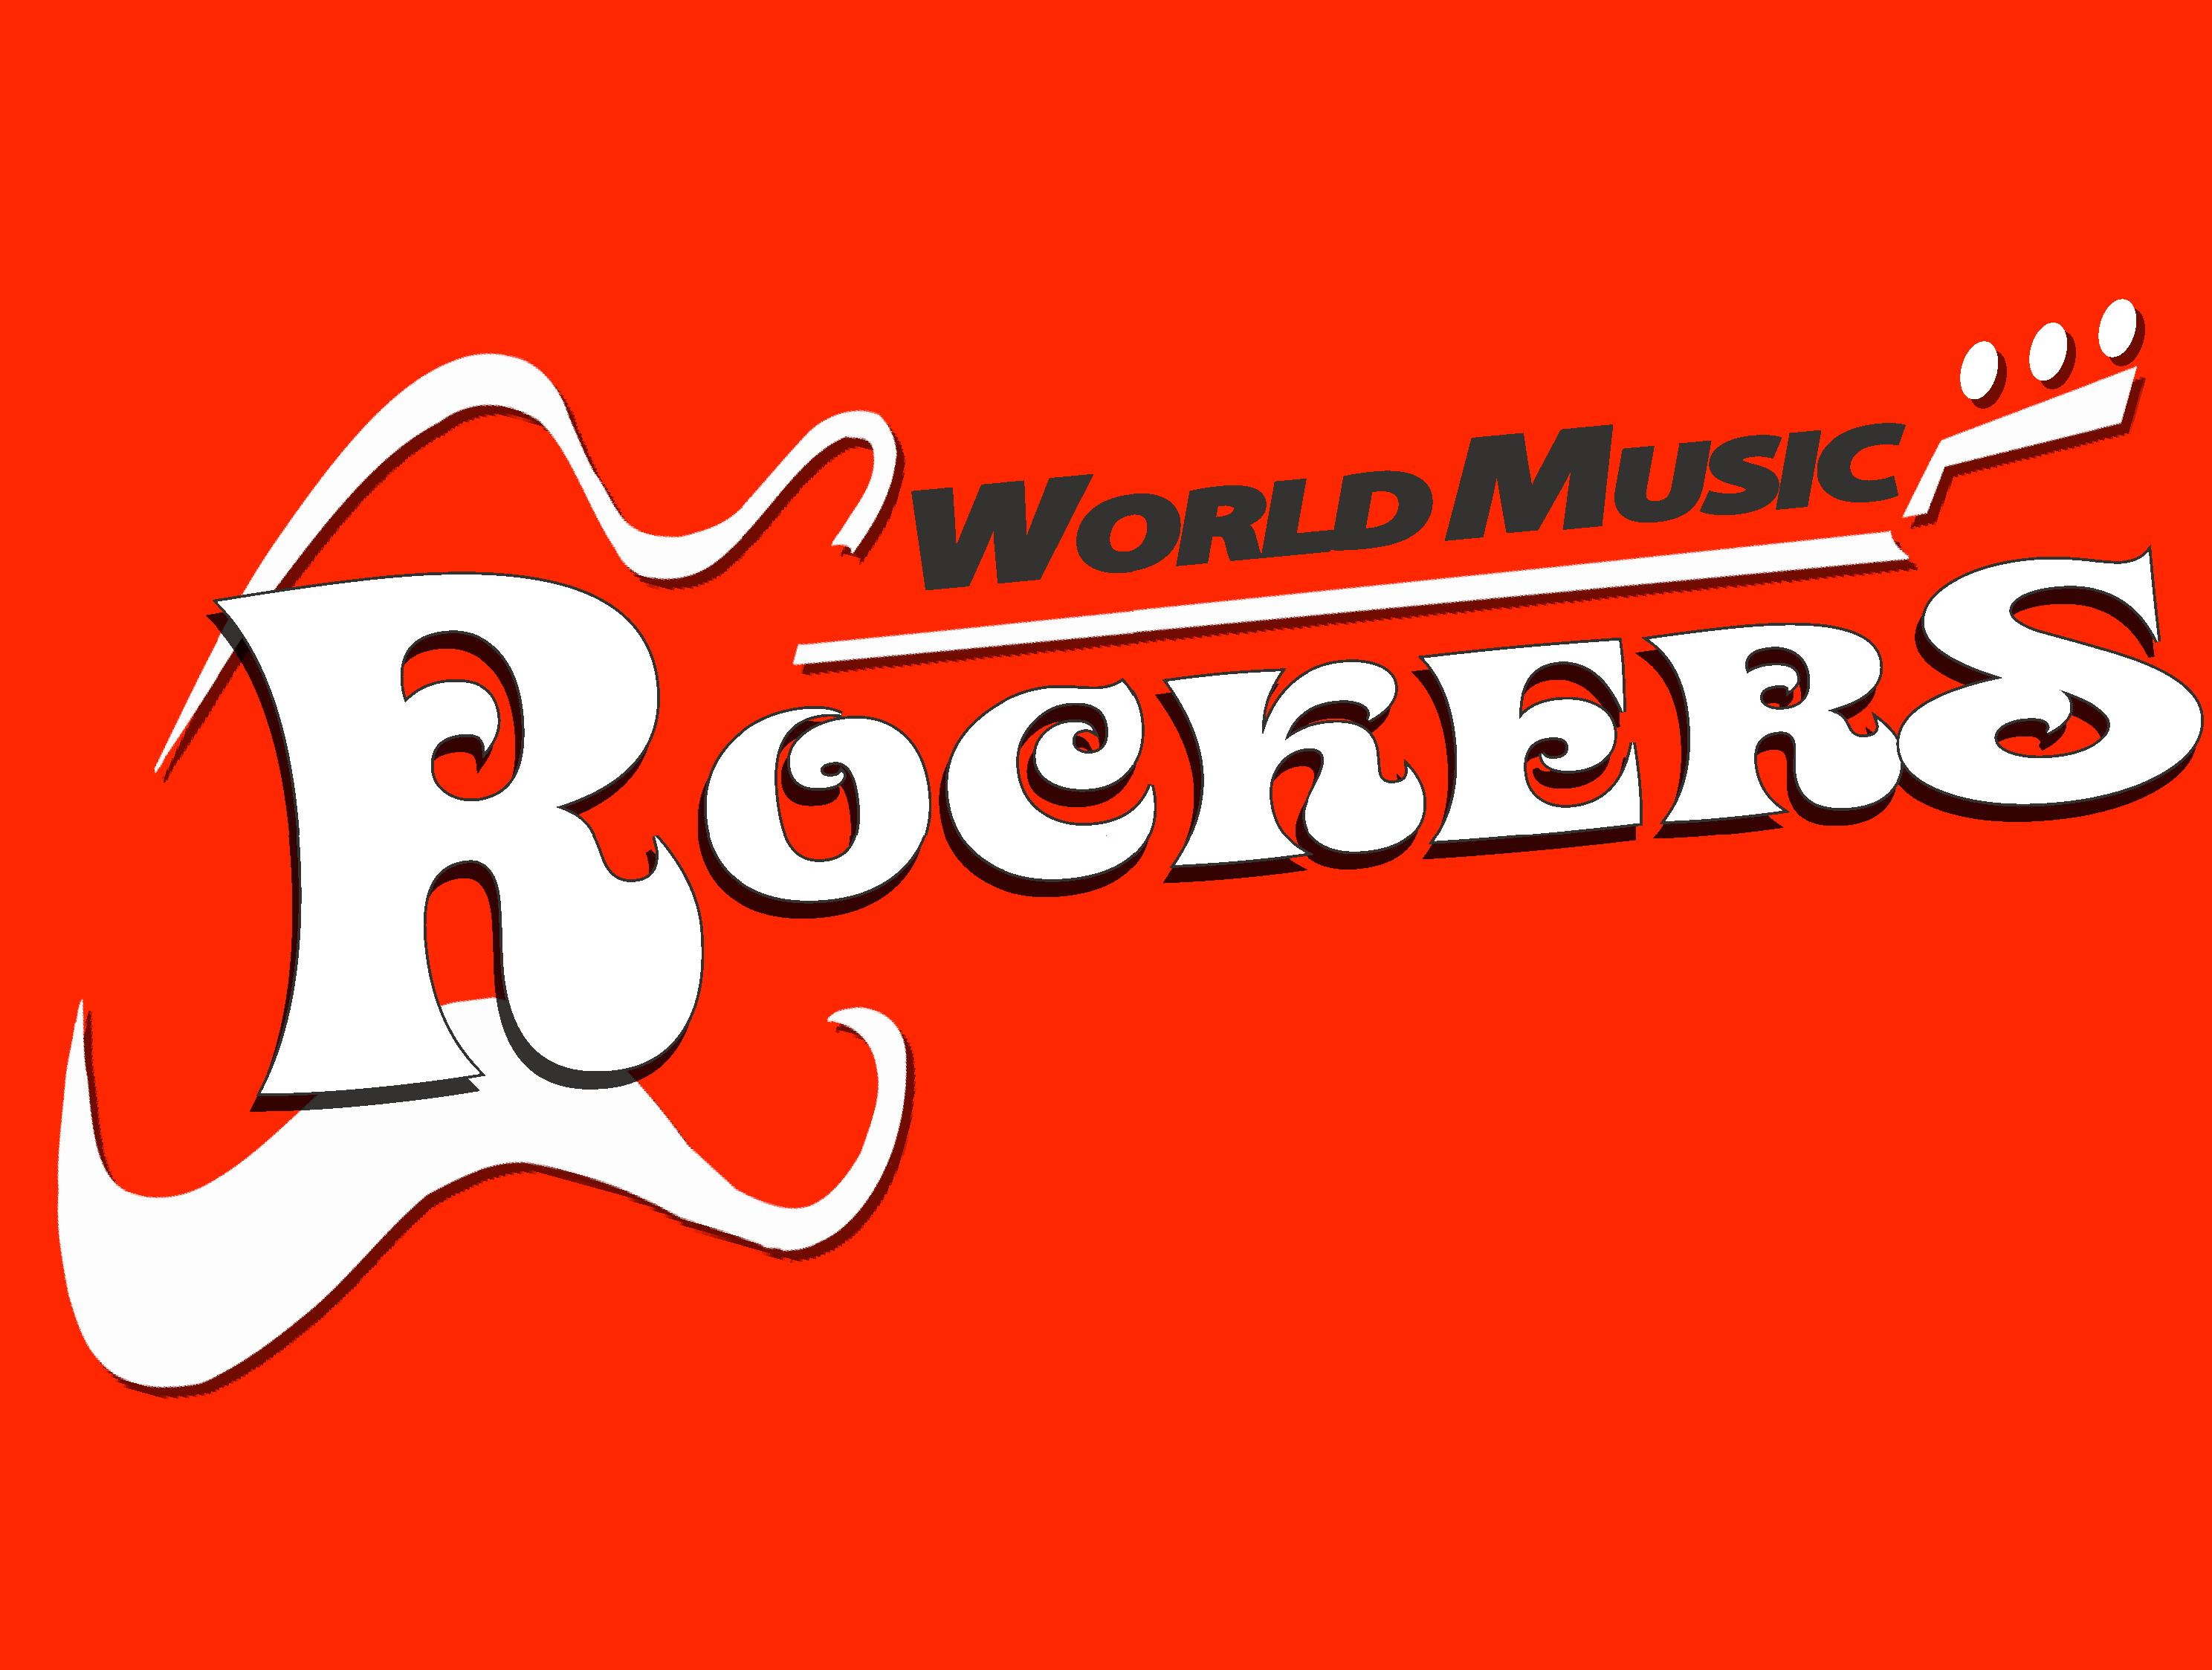 WorldMusicRockers